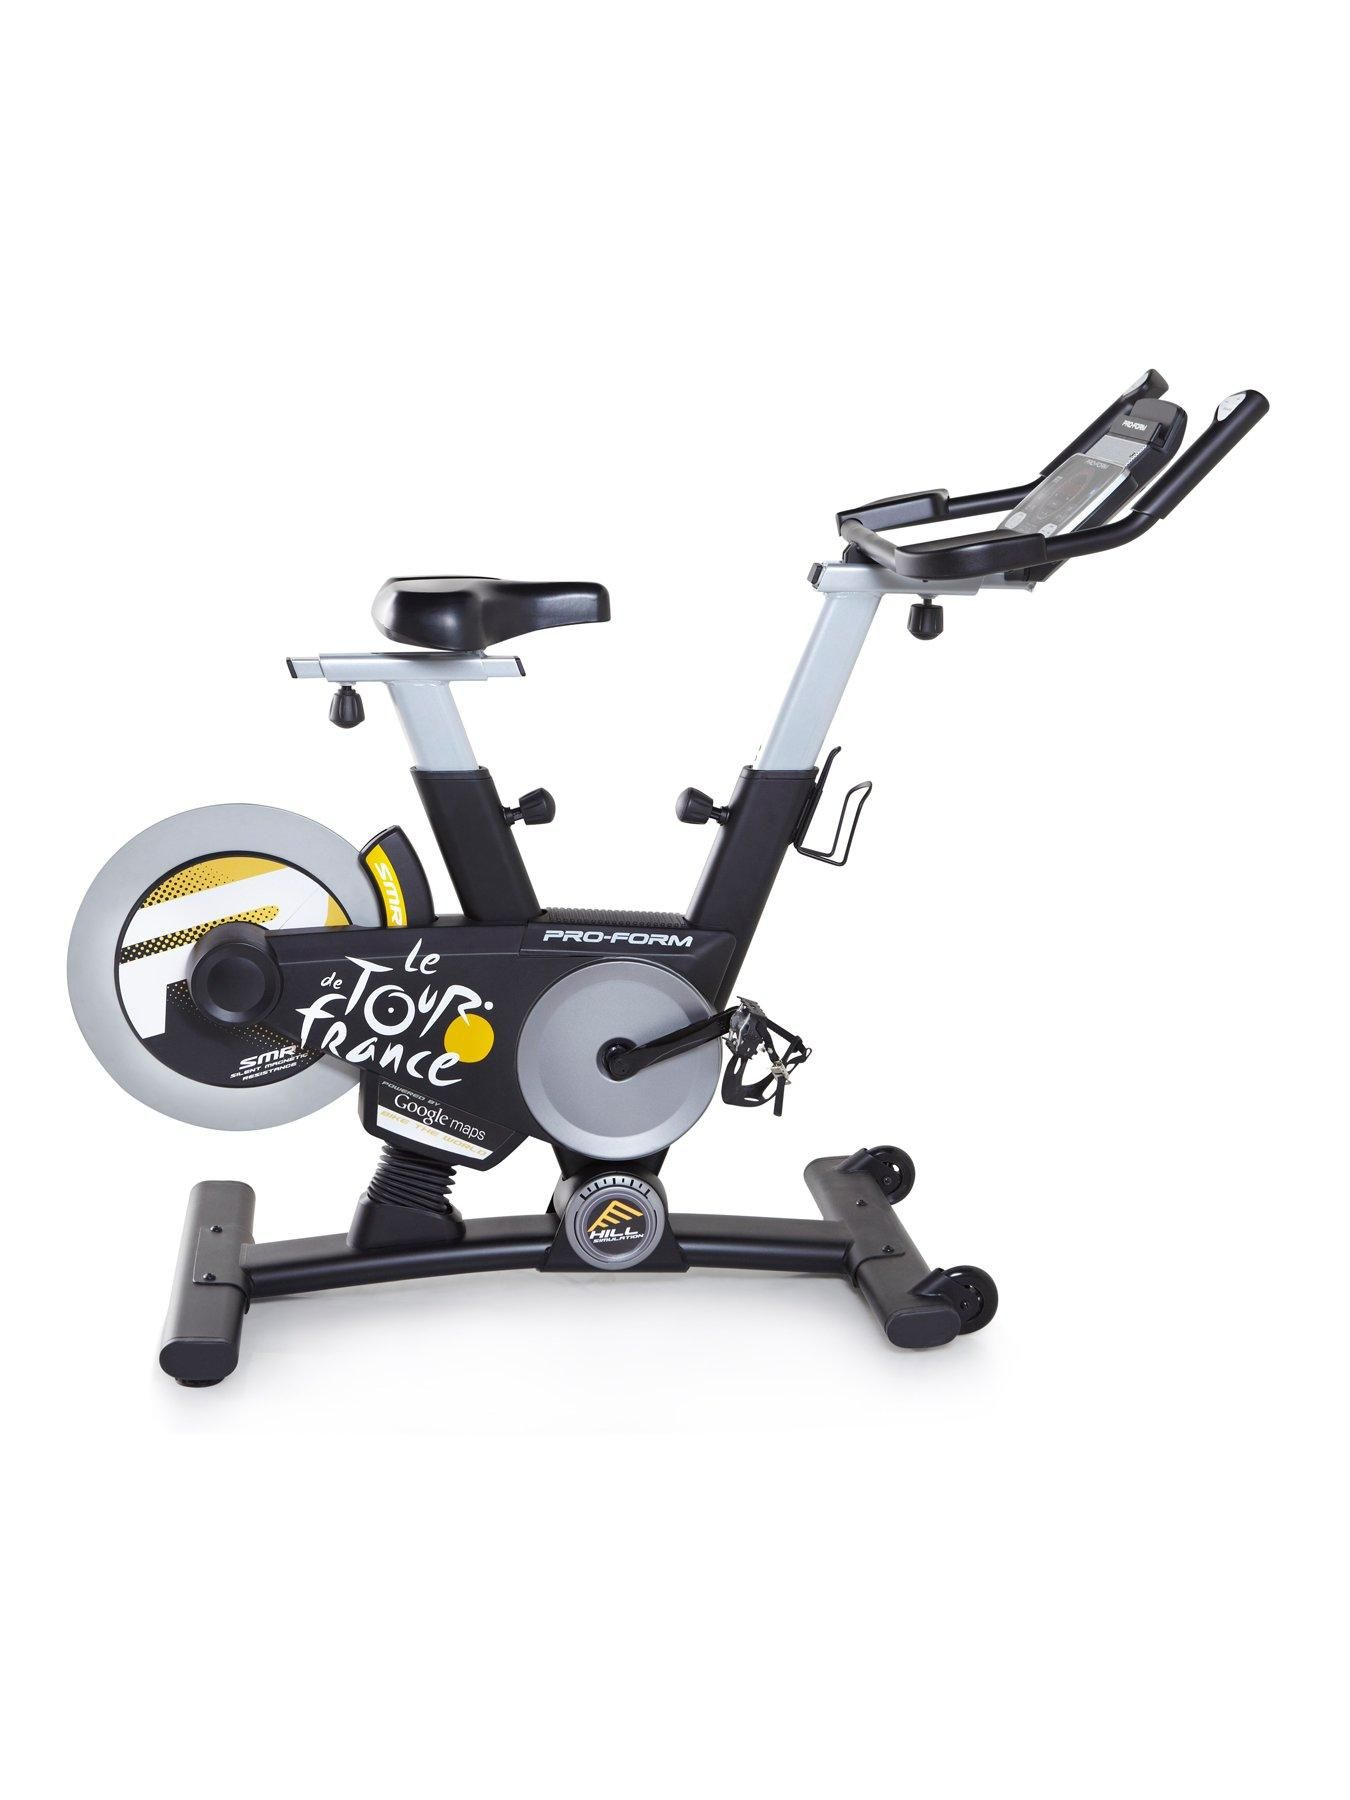 Pro Form Tdf 1 0 Le De Tour France Exercise Bike With Images